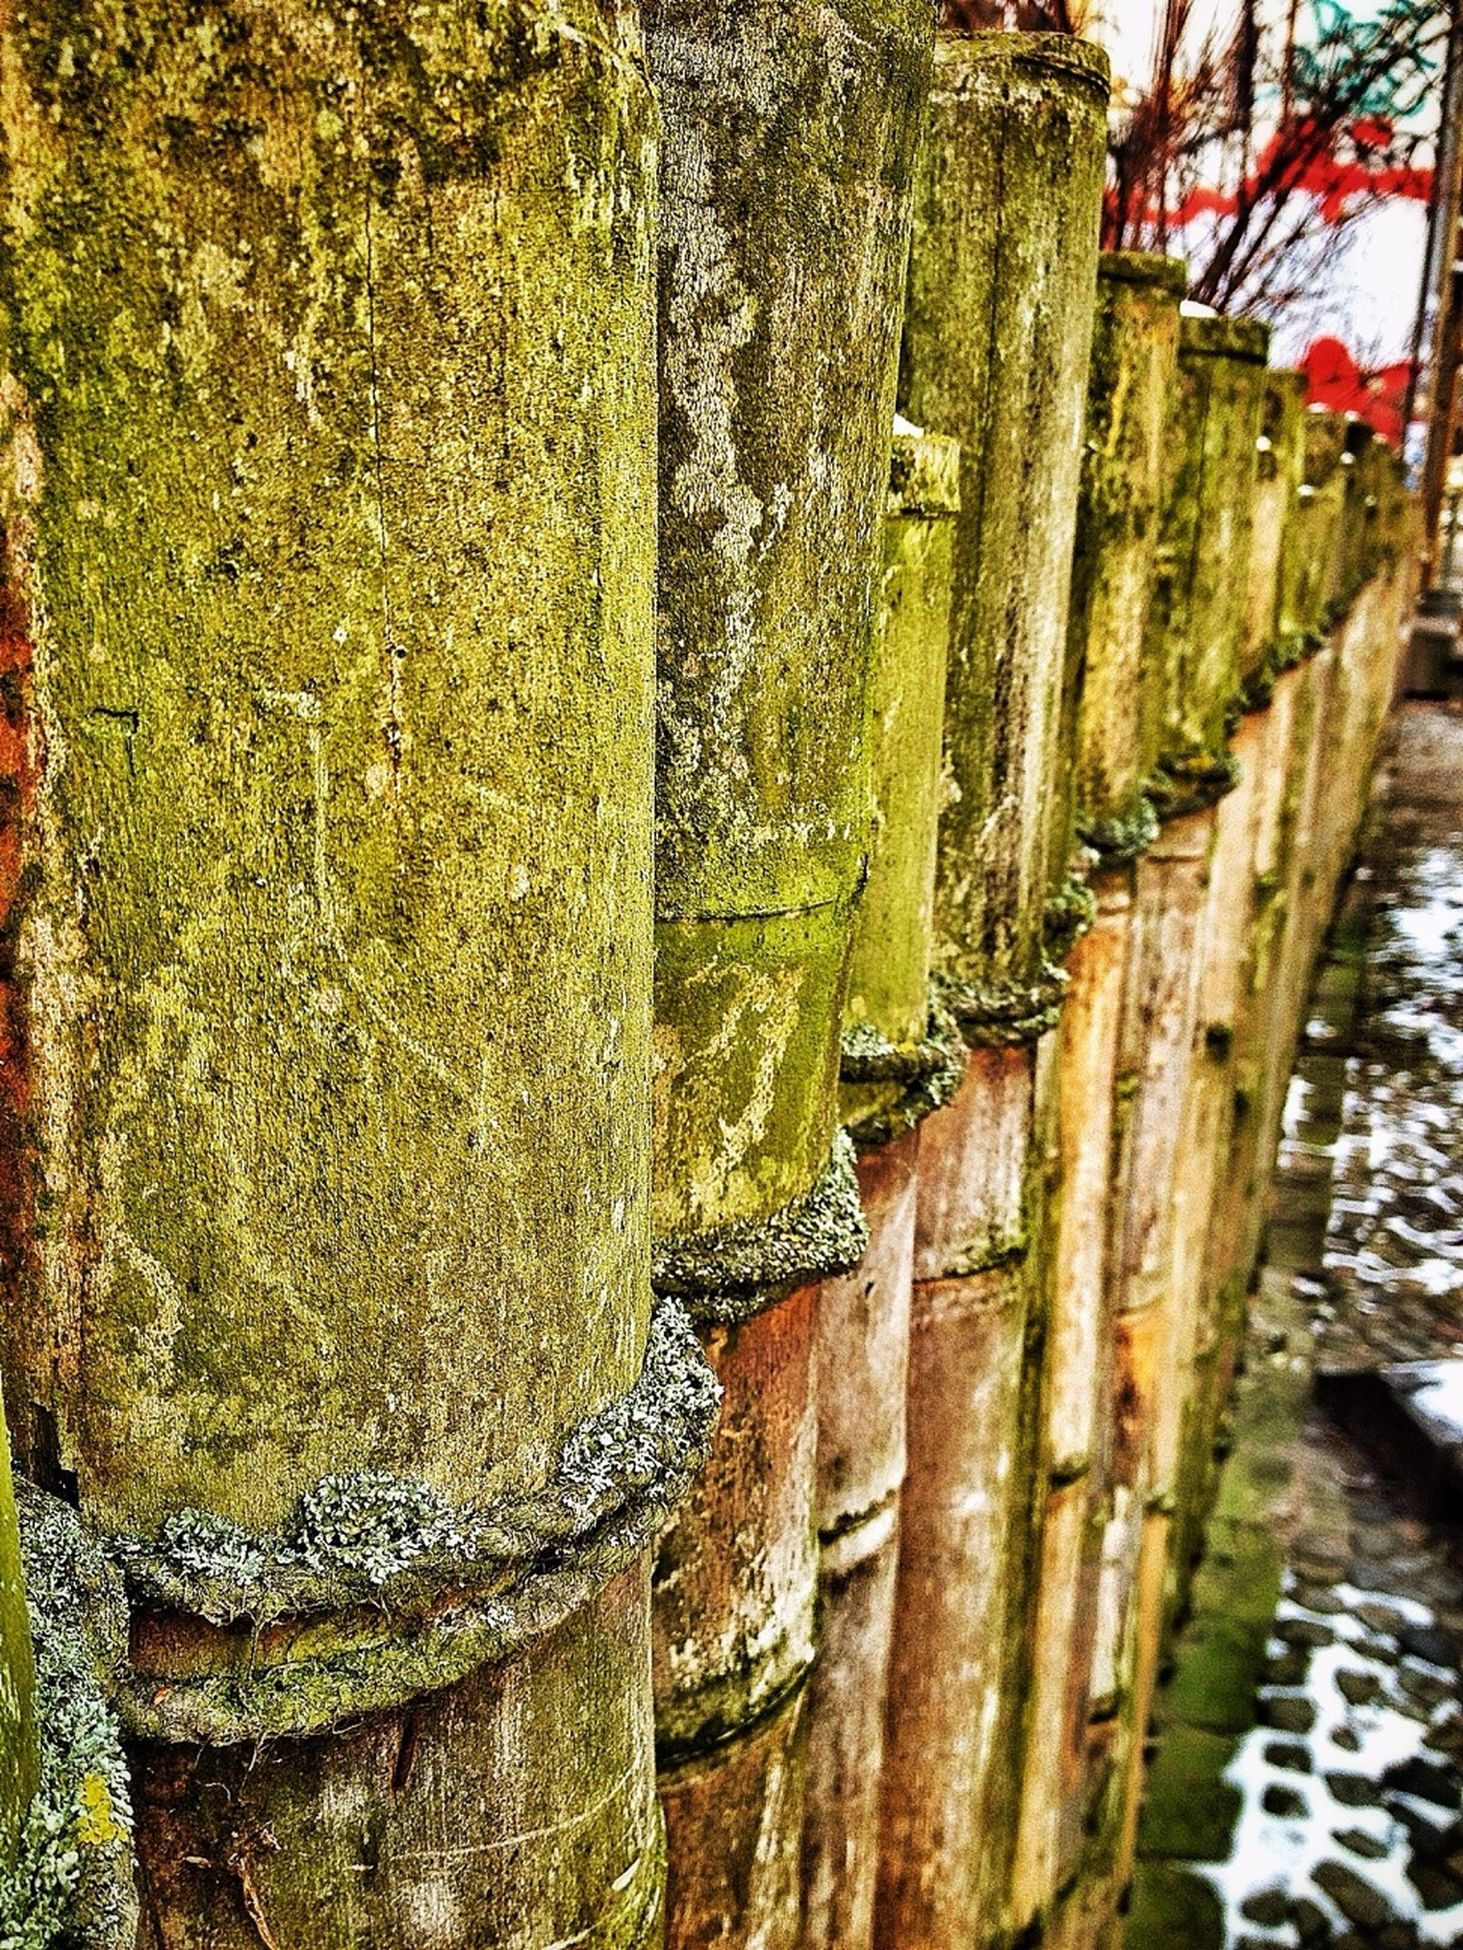 textured, full frame, wall, backgrounds, old, weathered, no people, day, damaged, wood, stone, outdoors, pattern, deterioration, stone wall, geometry, deterioration, ruined, bad condition, broken, destruction